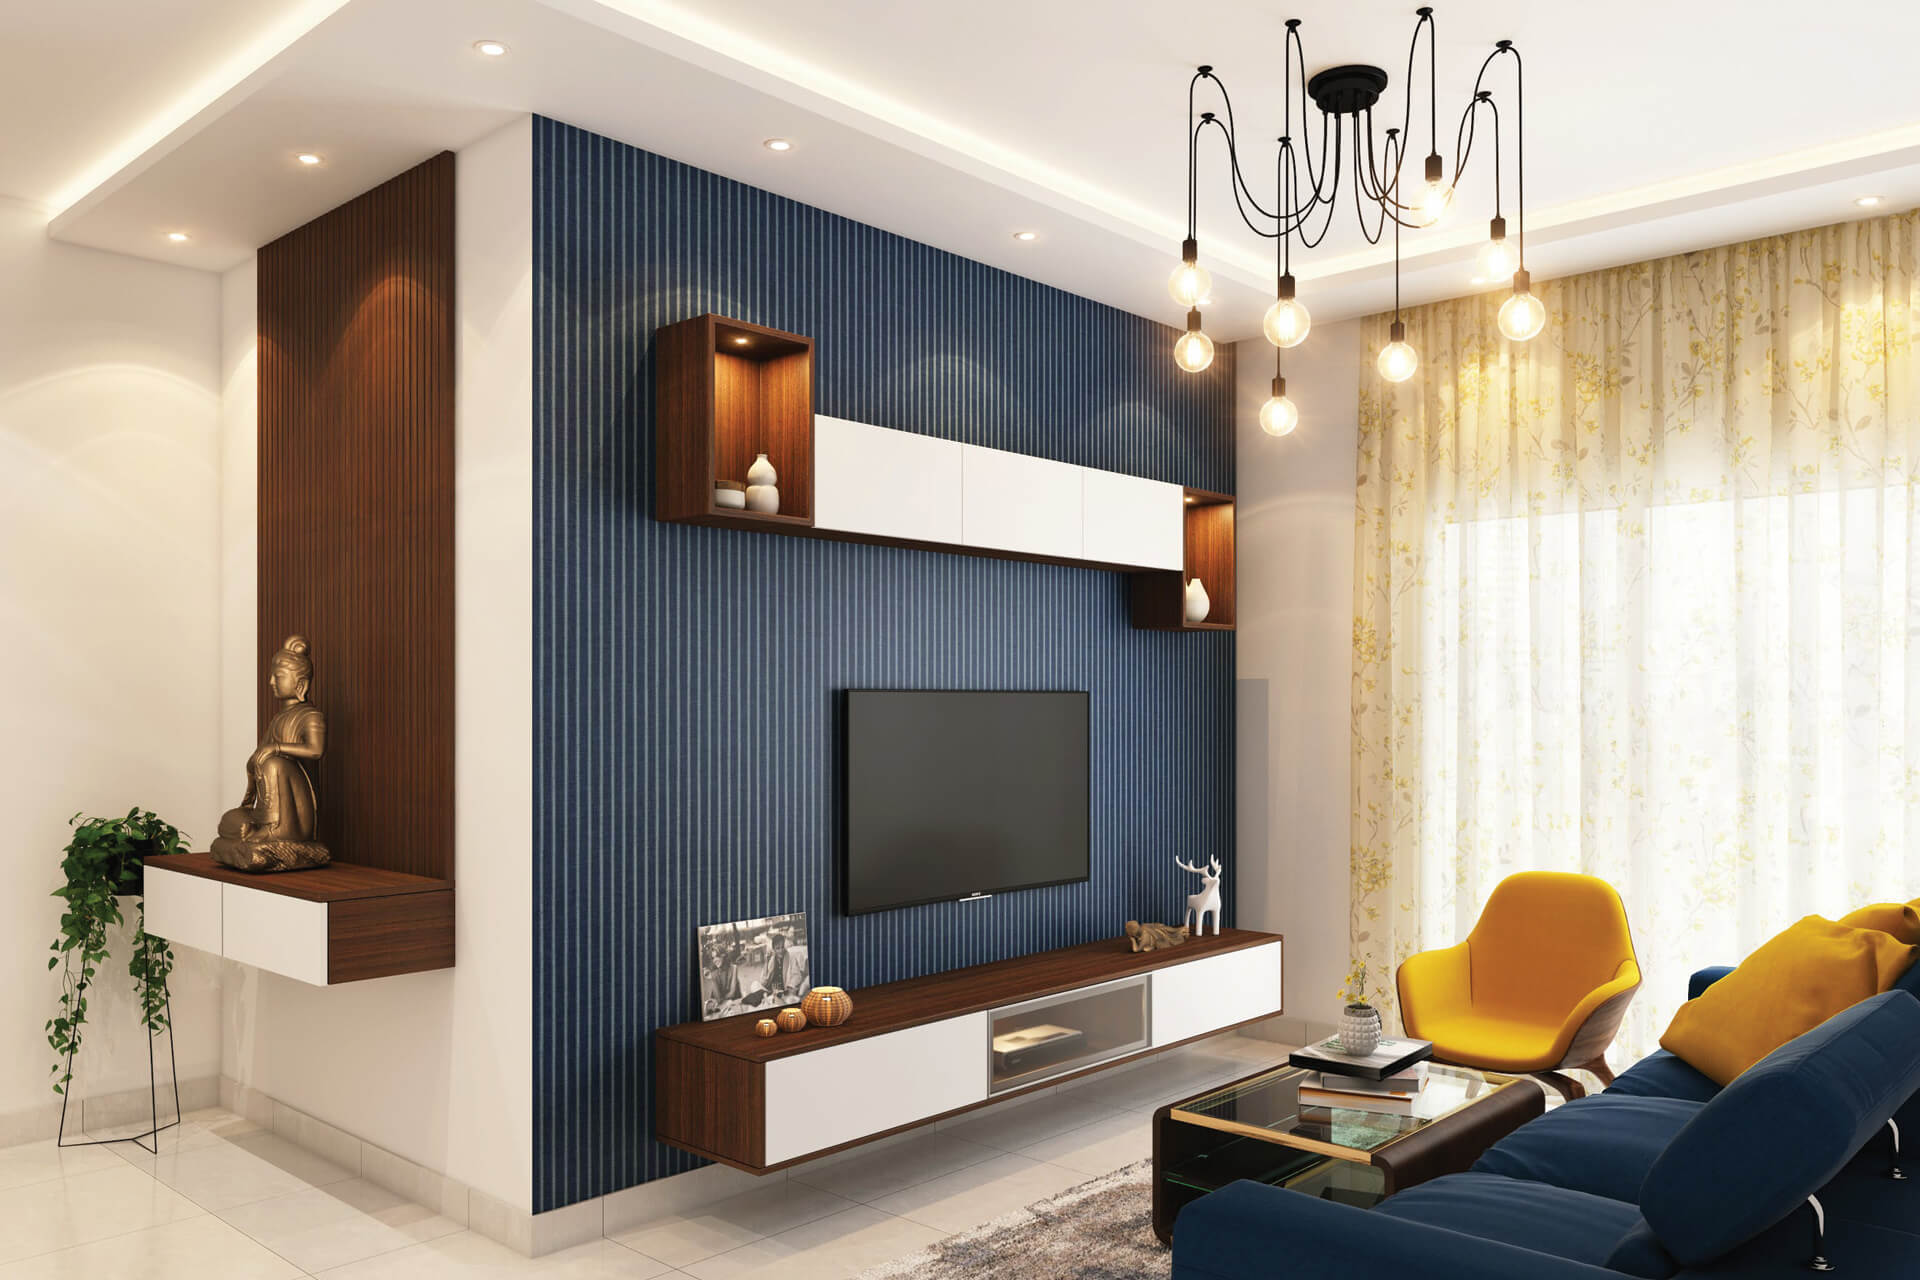 decor pursuits - decorate your home the way you want